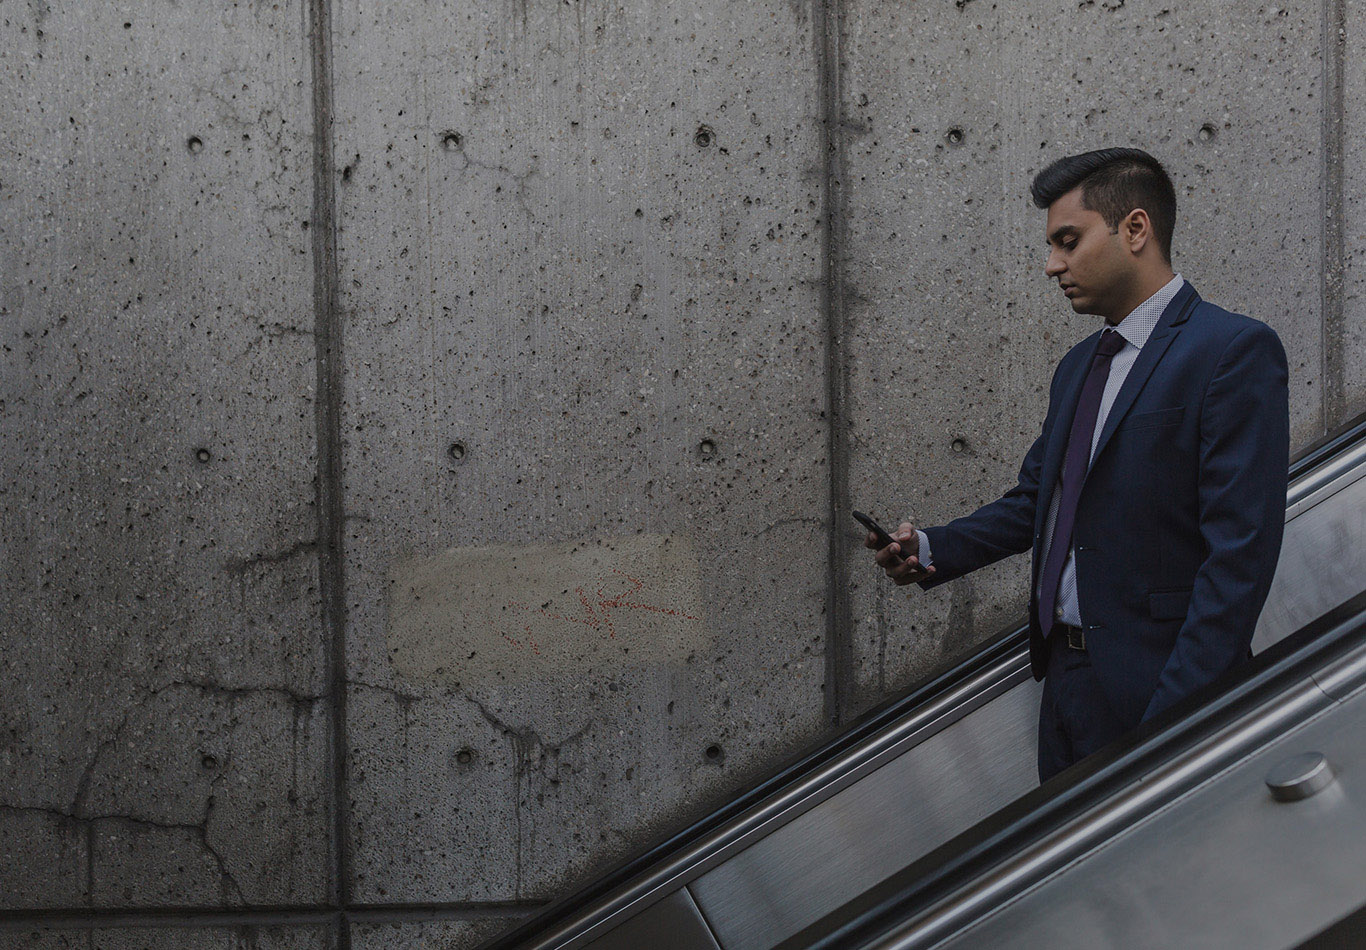 A business man is looking at his phone as they go down an escalator